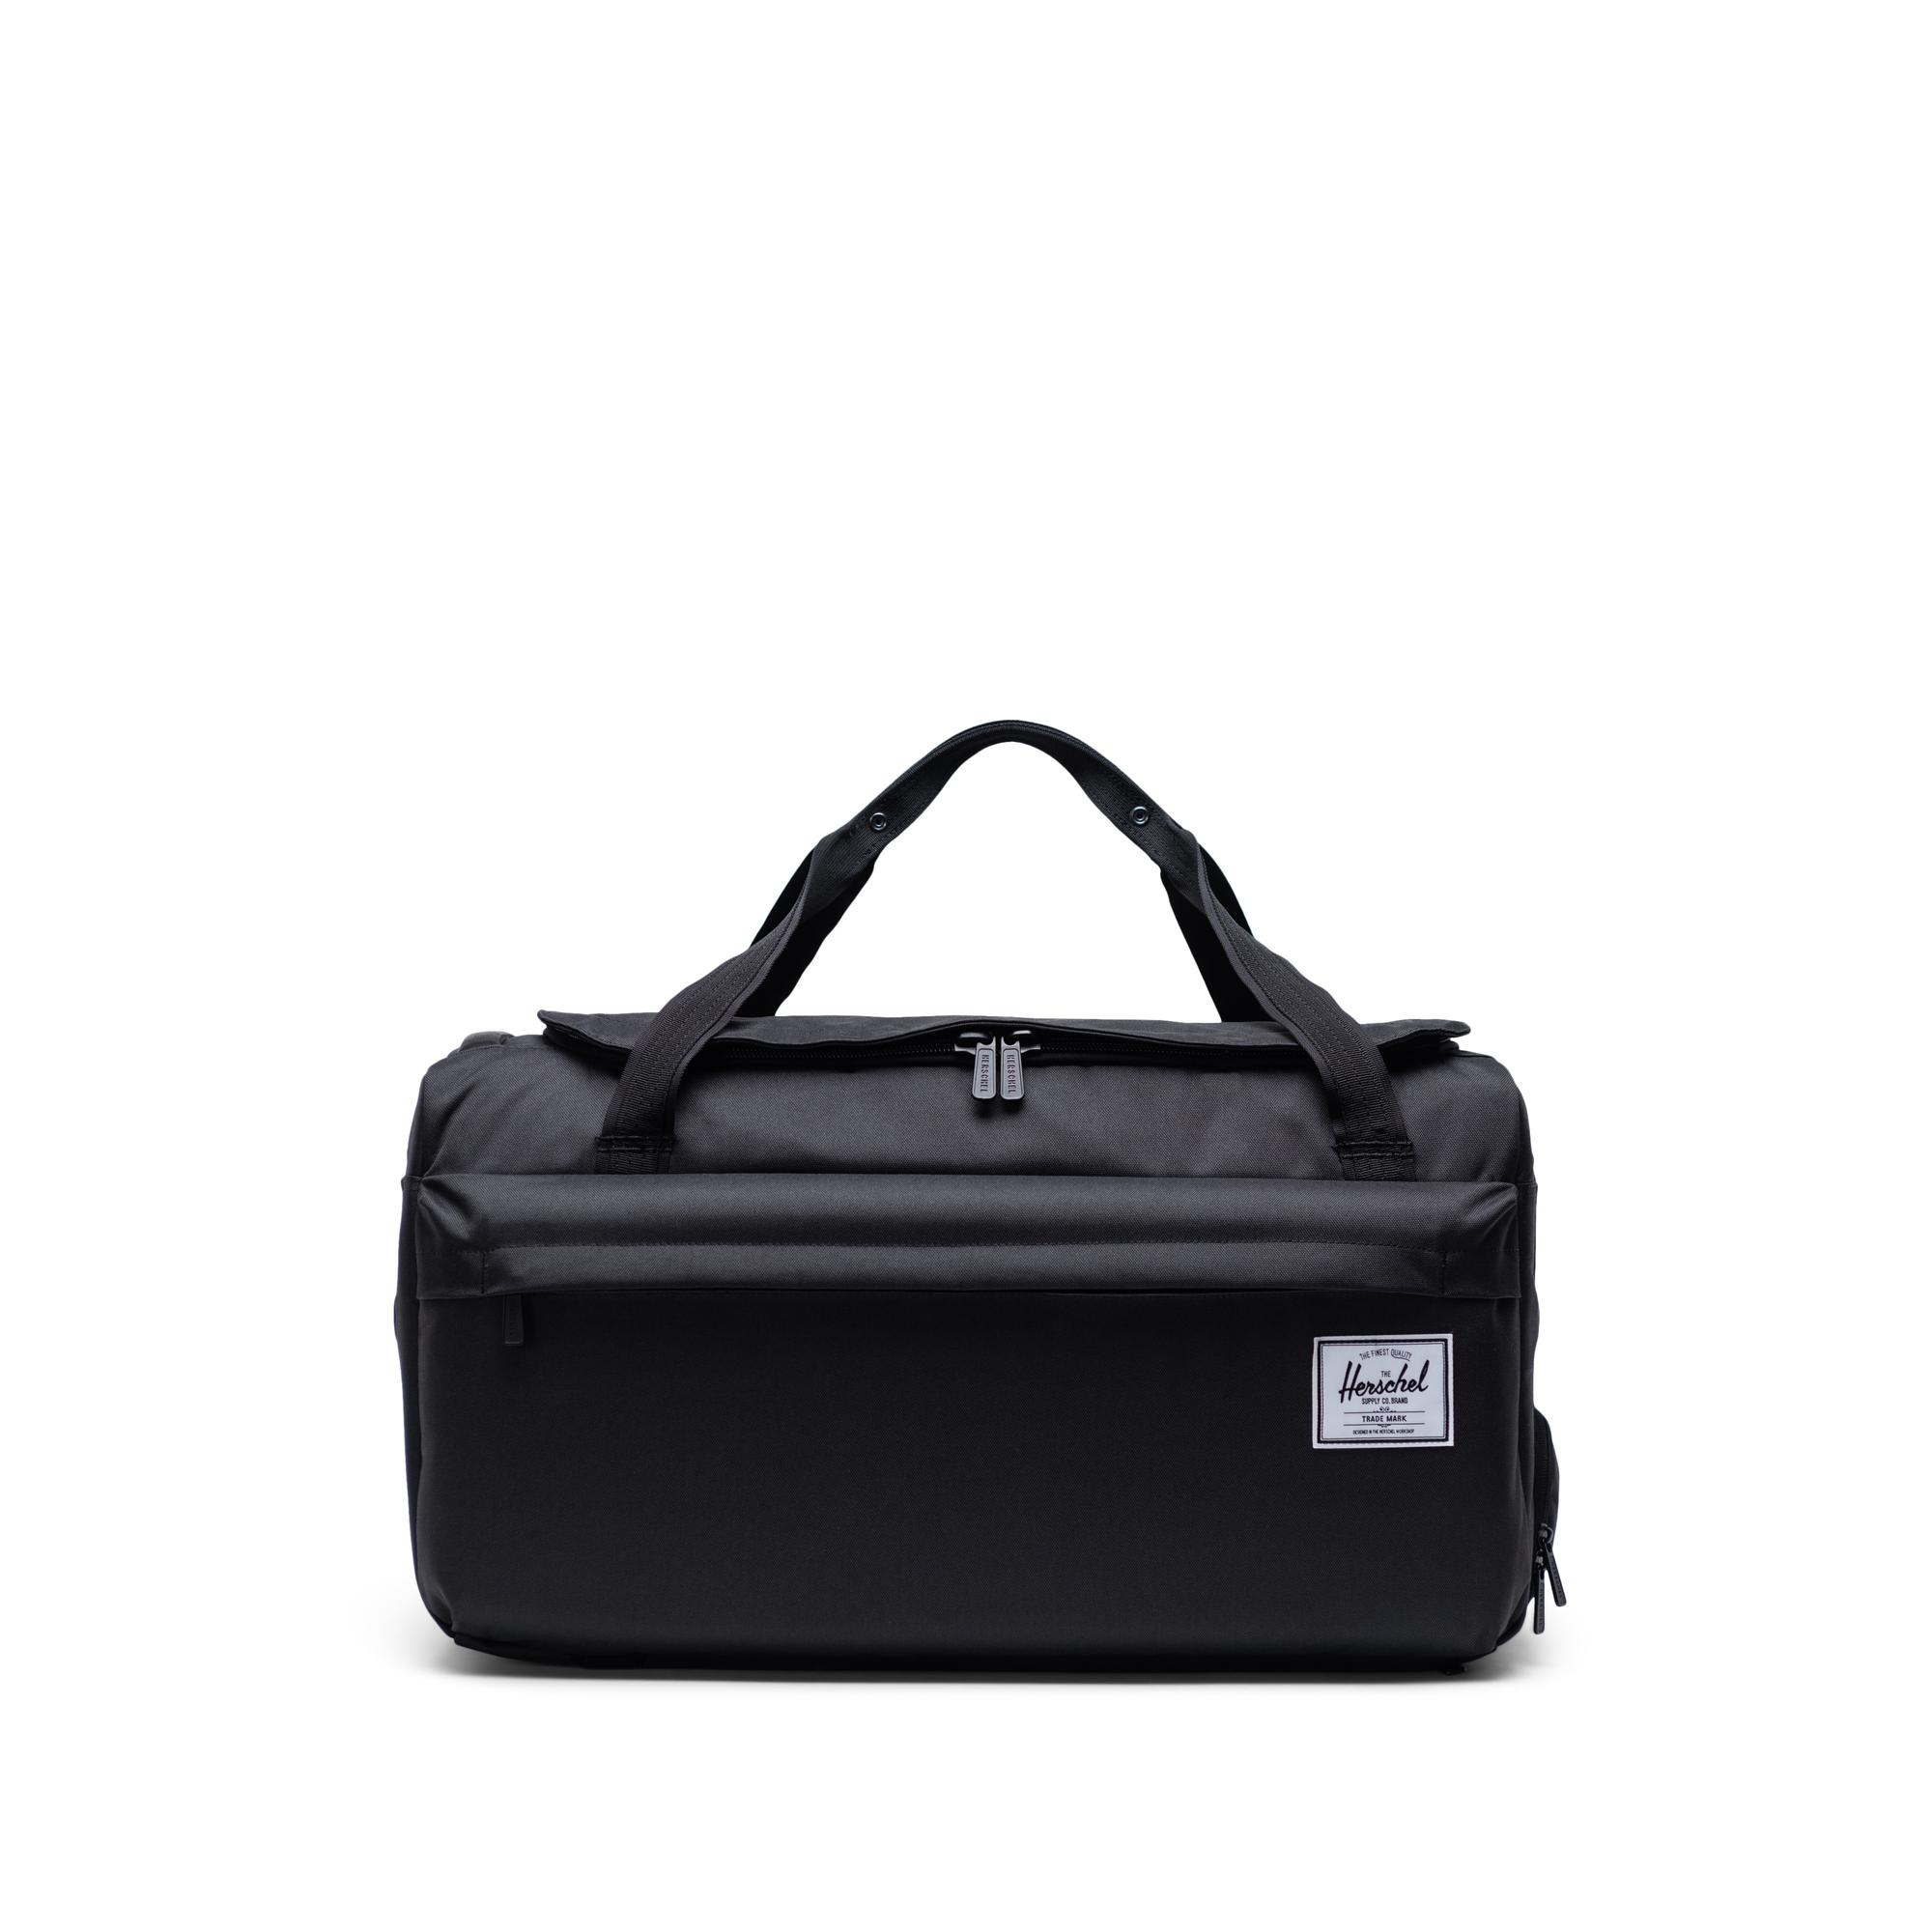 Outfitter Luggage | 50 L by Herschel Supply Co.